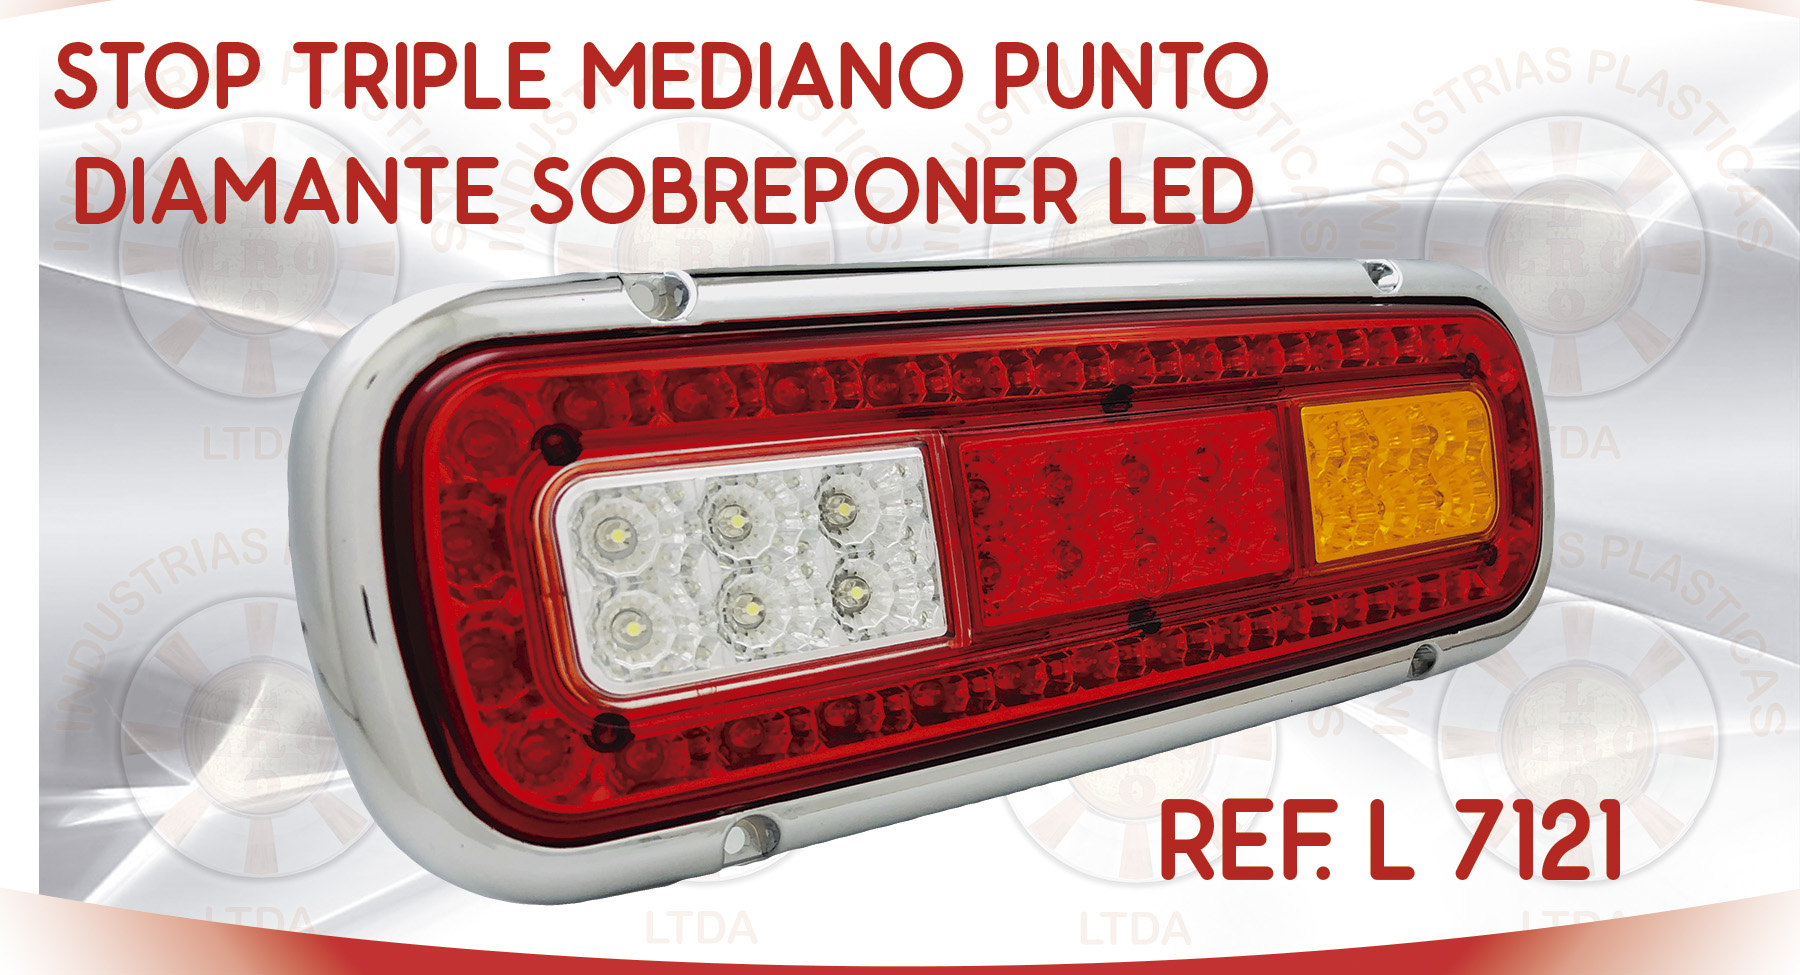 L 7121 STOP TRIPLE MEDIANO PUNTO DIAMANTE SOBREPONER LED